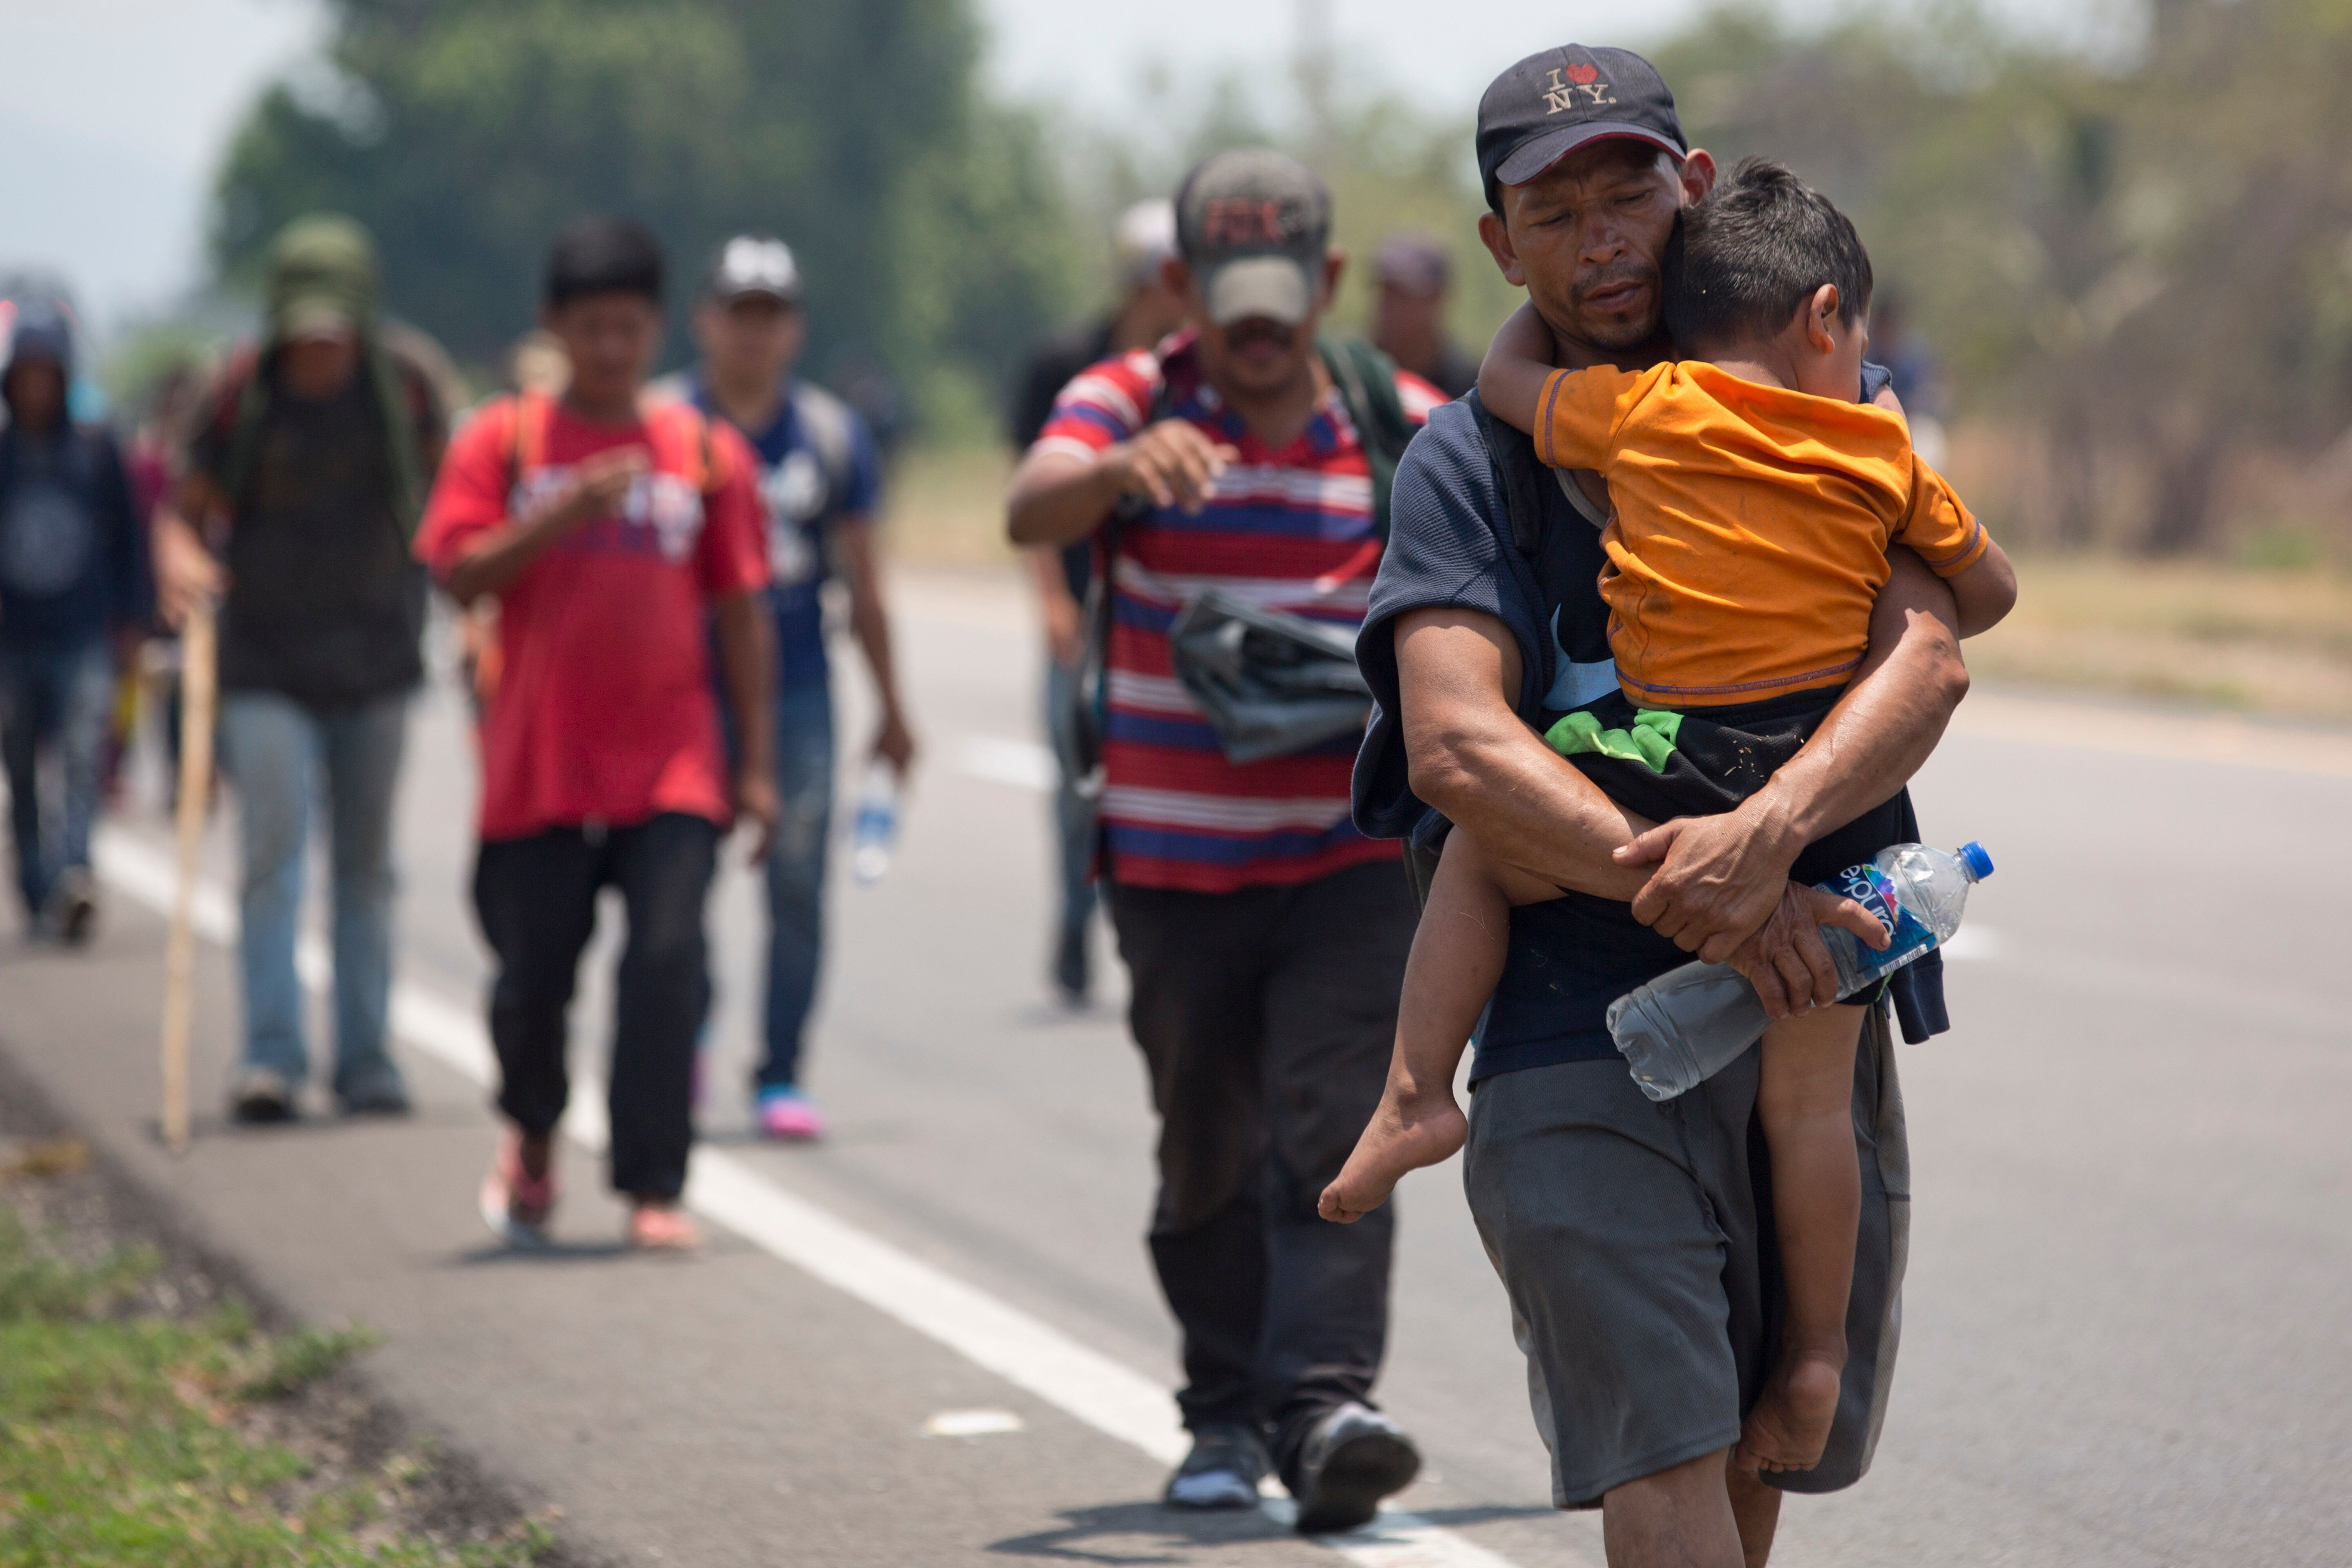 A Central American migrant man carrying a child walks along the highway through Tonala, Chiapas state, Mexico, Sunday, April 21, 2019, as a migrant caravan heads to the U.S. border. The outpouring of aid that once greeted Central American migrants as they trekked in caravans through southern Mexico has been drying up, so this group is hungrier, advancing slowly or not at all, and hounded by unhelpful local officials. (AP Photo/Moises Castillo)